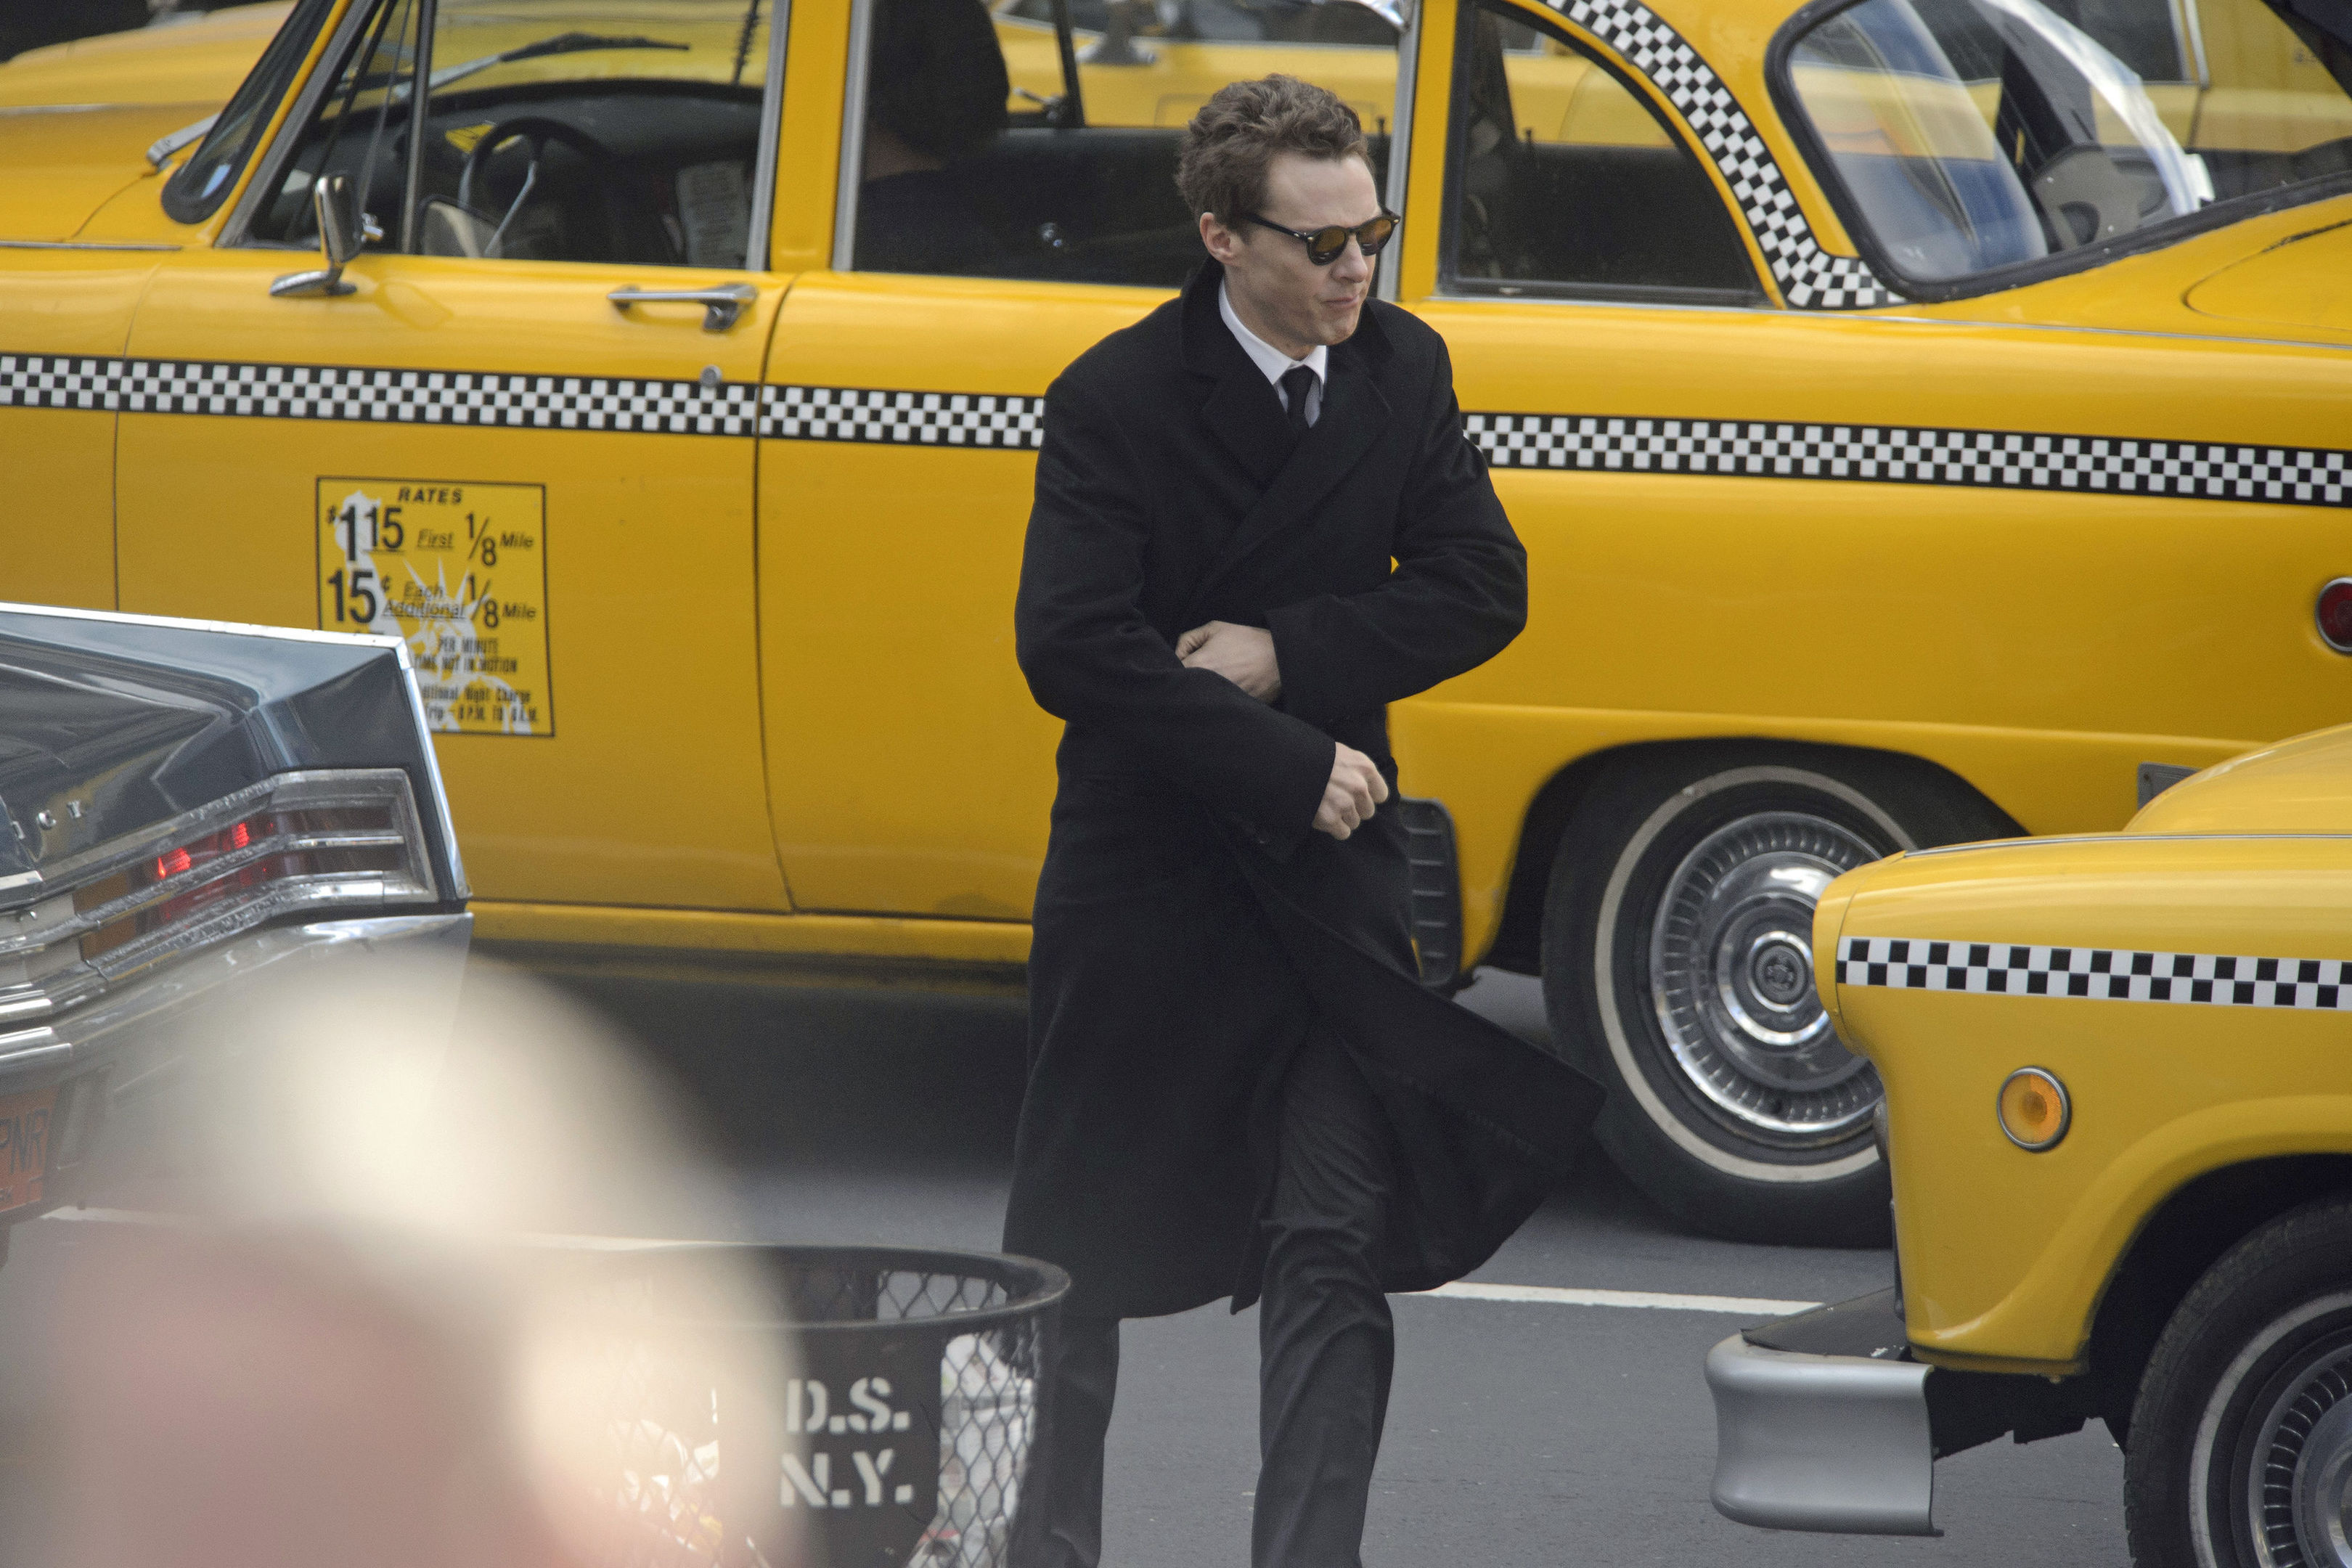 Actor Benedict Cumberbatch shooting scenes in Glasgow (John Linton/PA Wire)